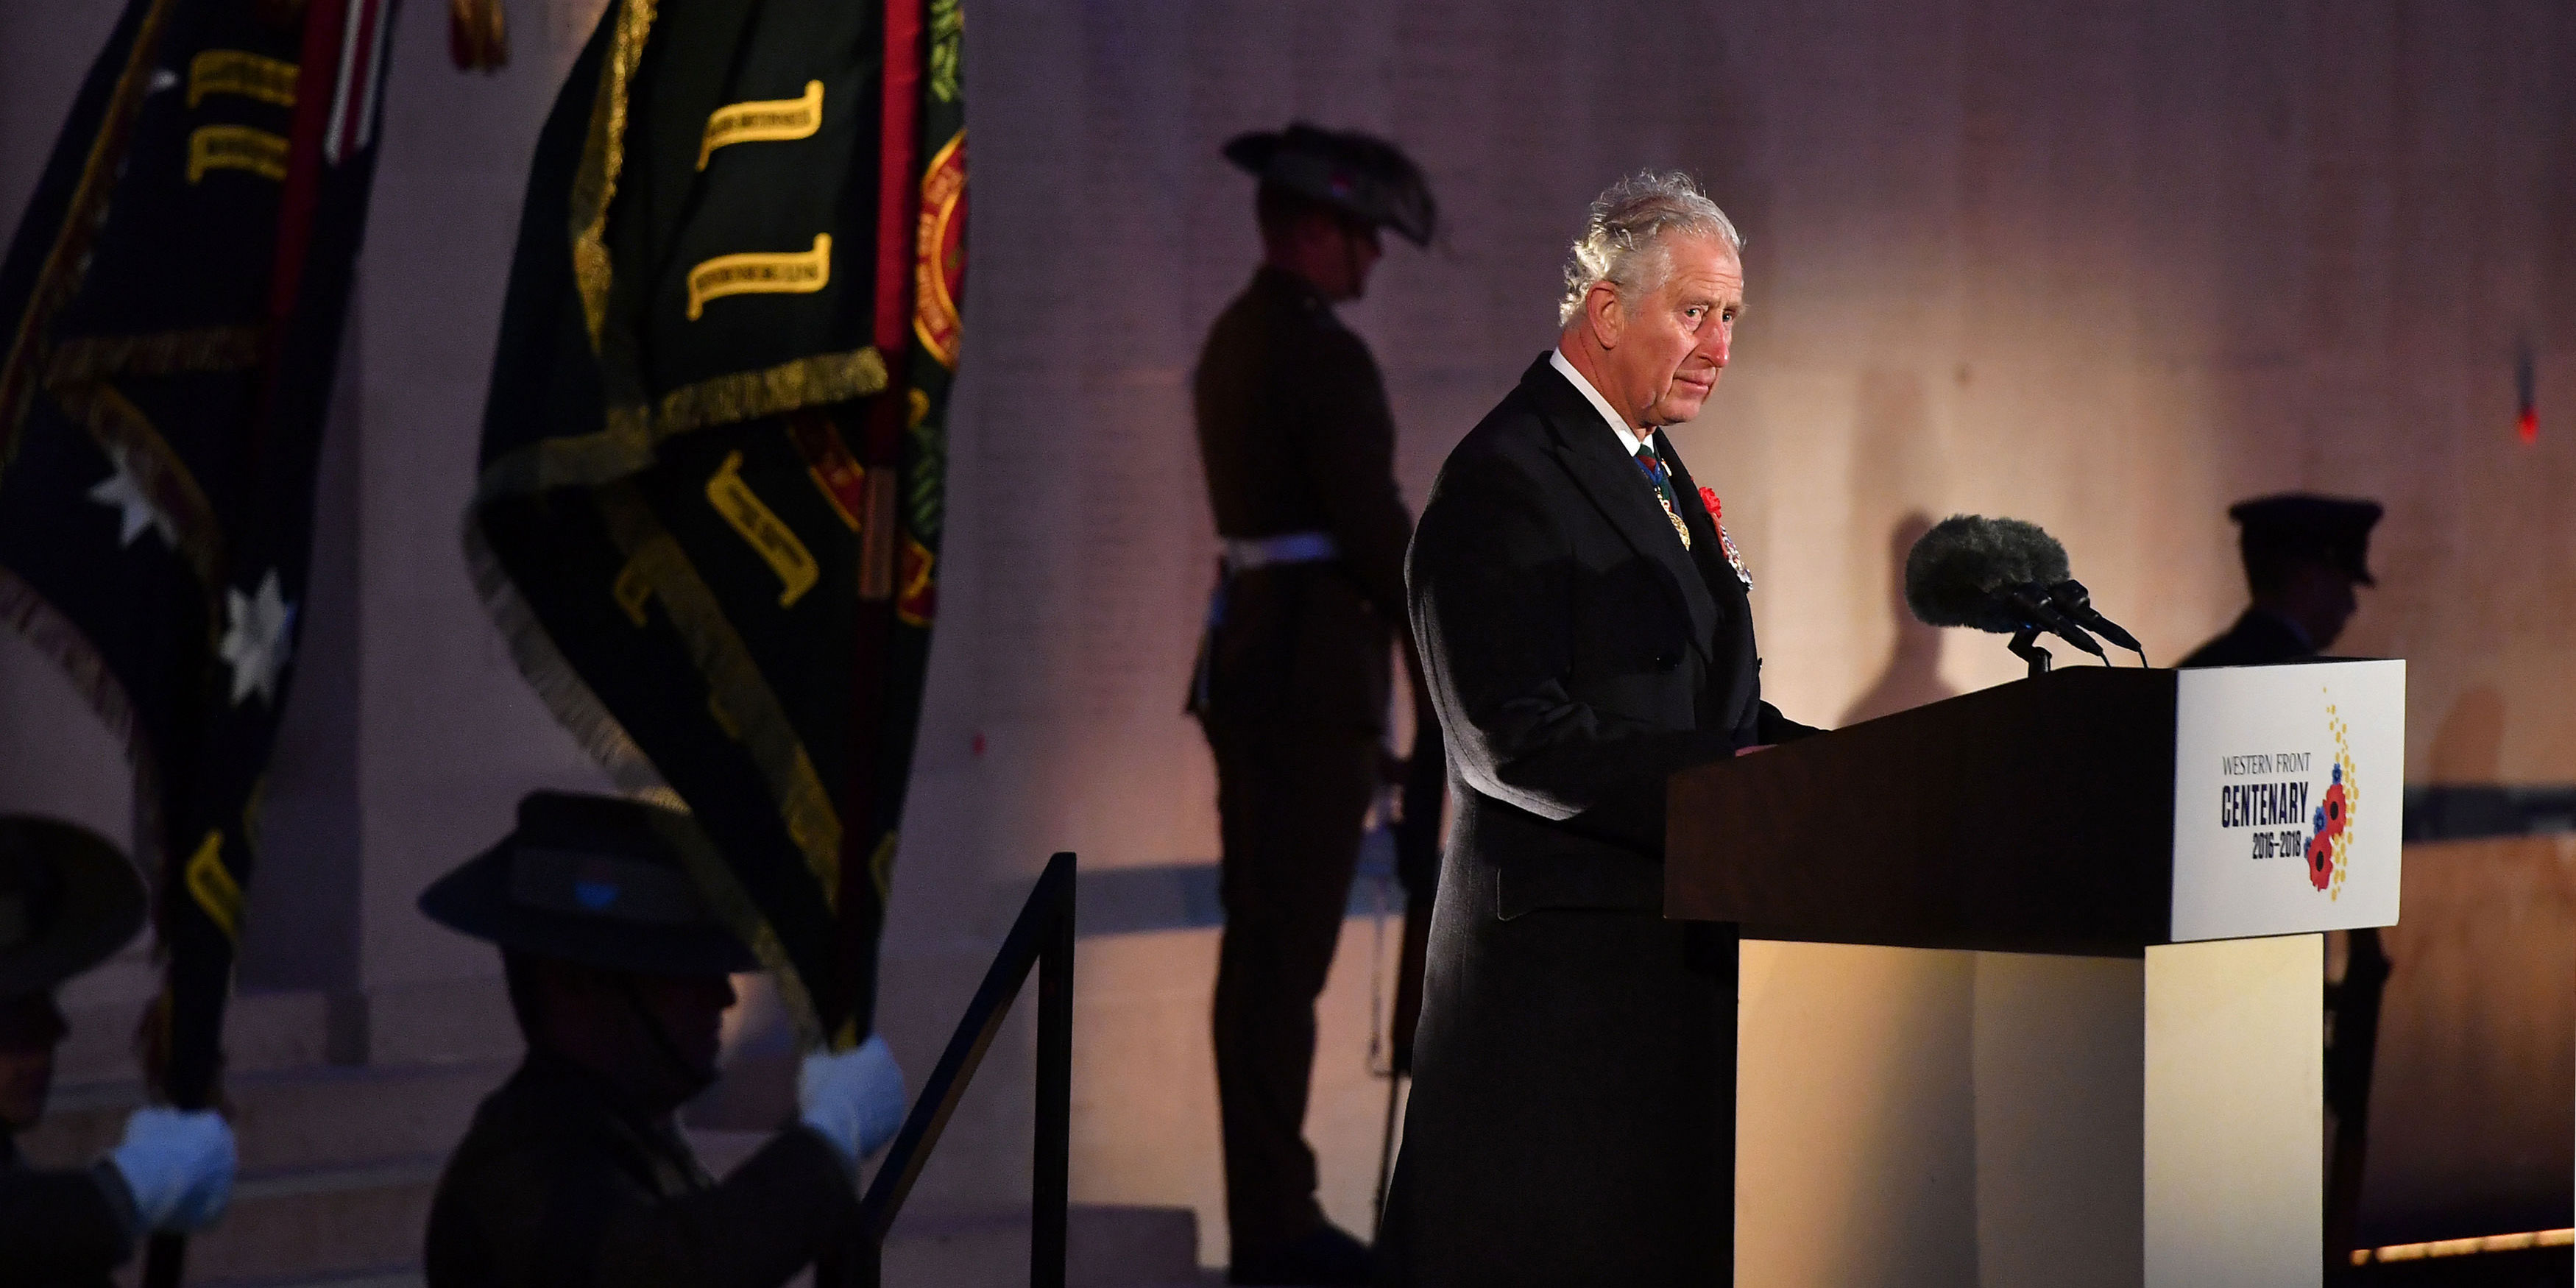 Prince of Wales attends Anzac Day 2018